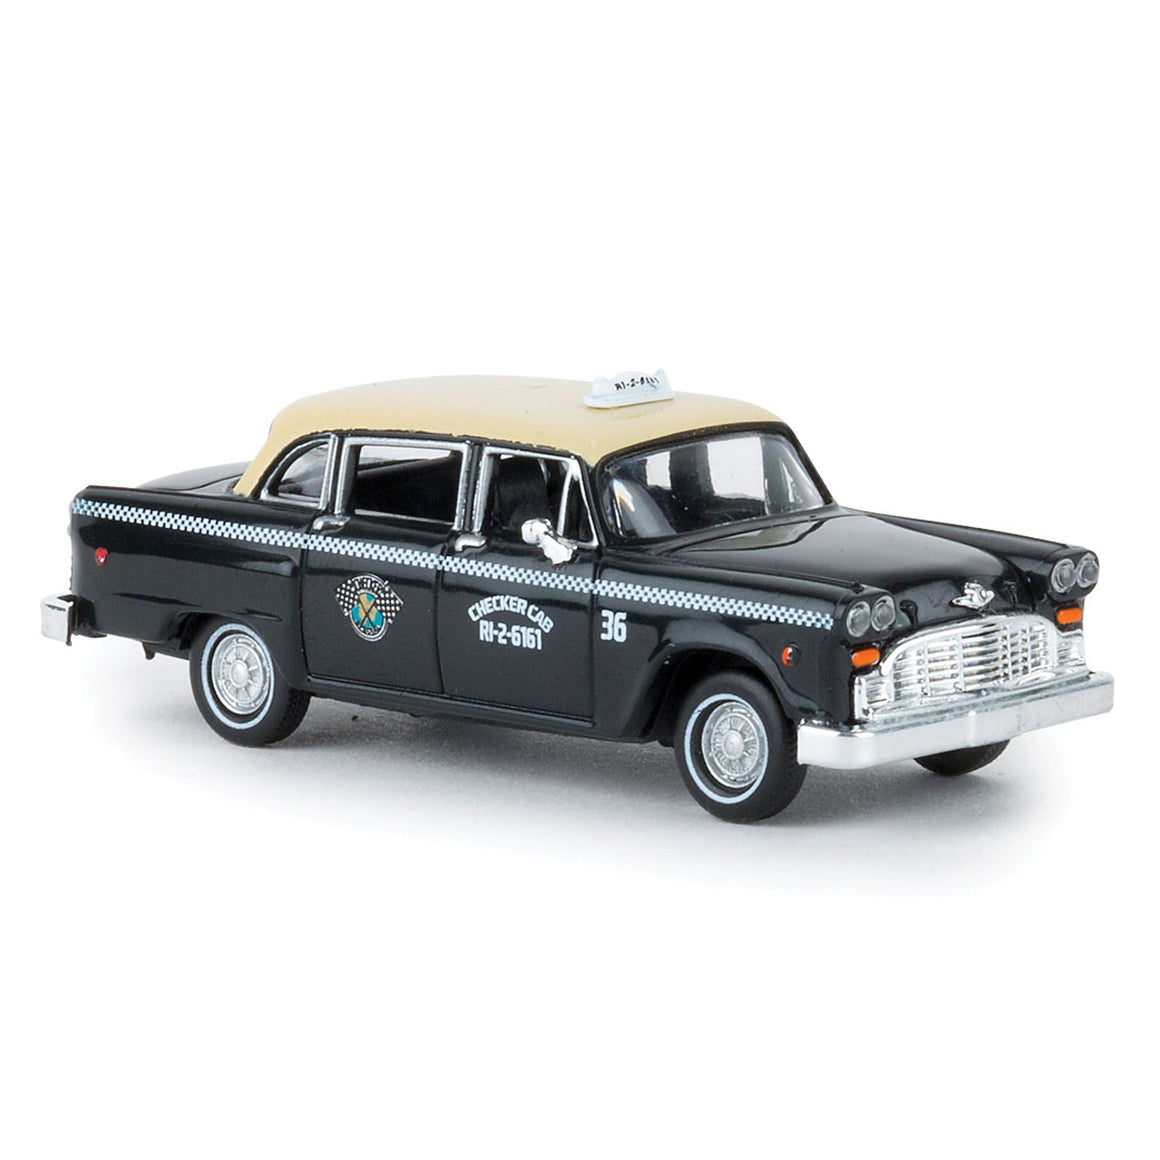 HO Scale: Checker Marathon Taxicab - Dallas